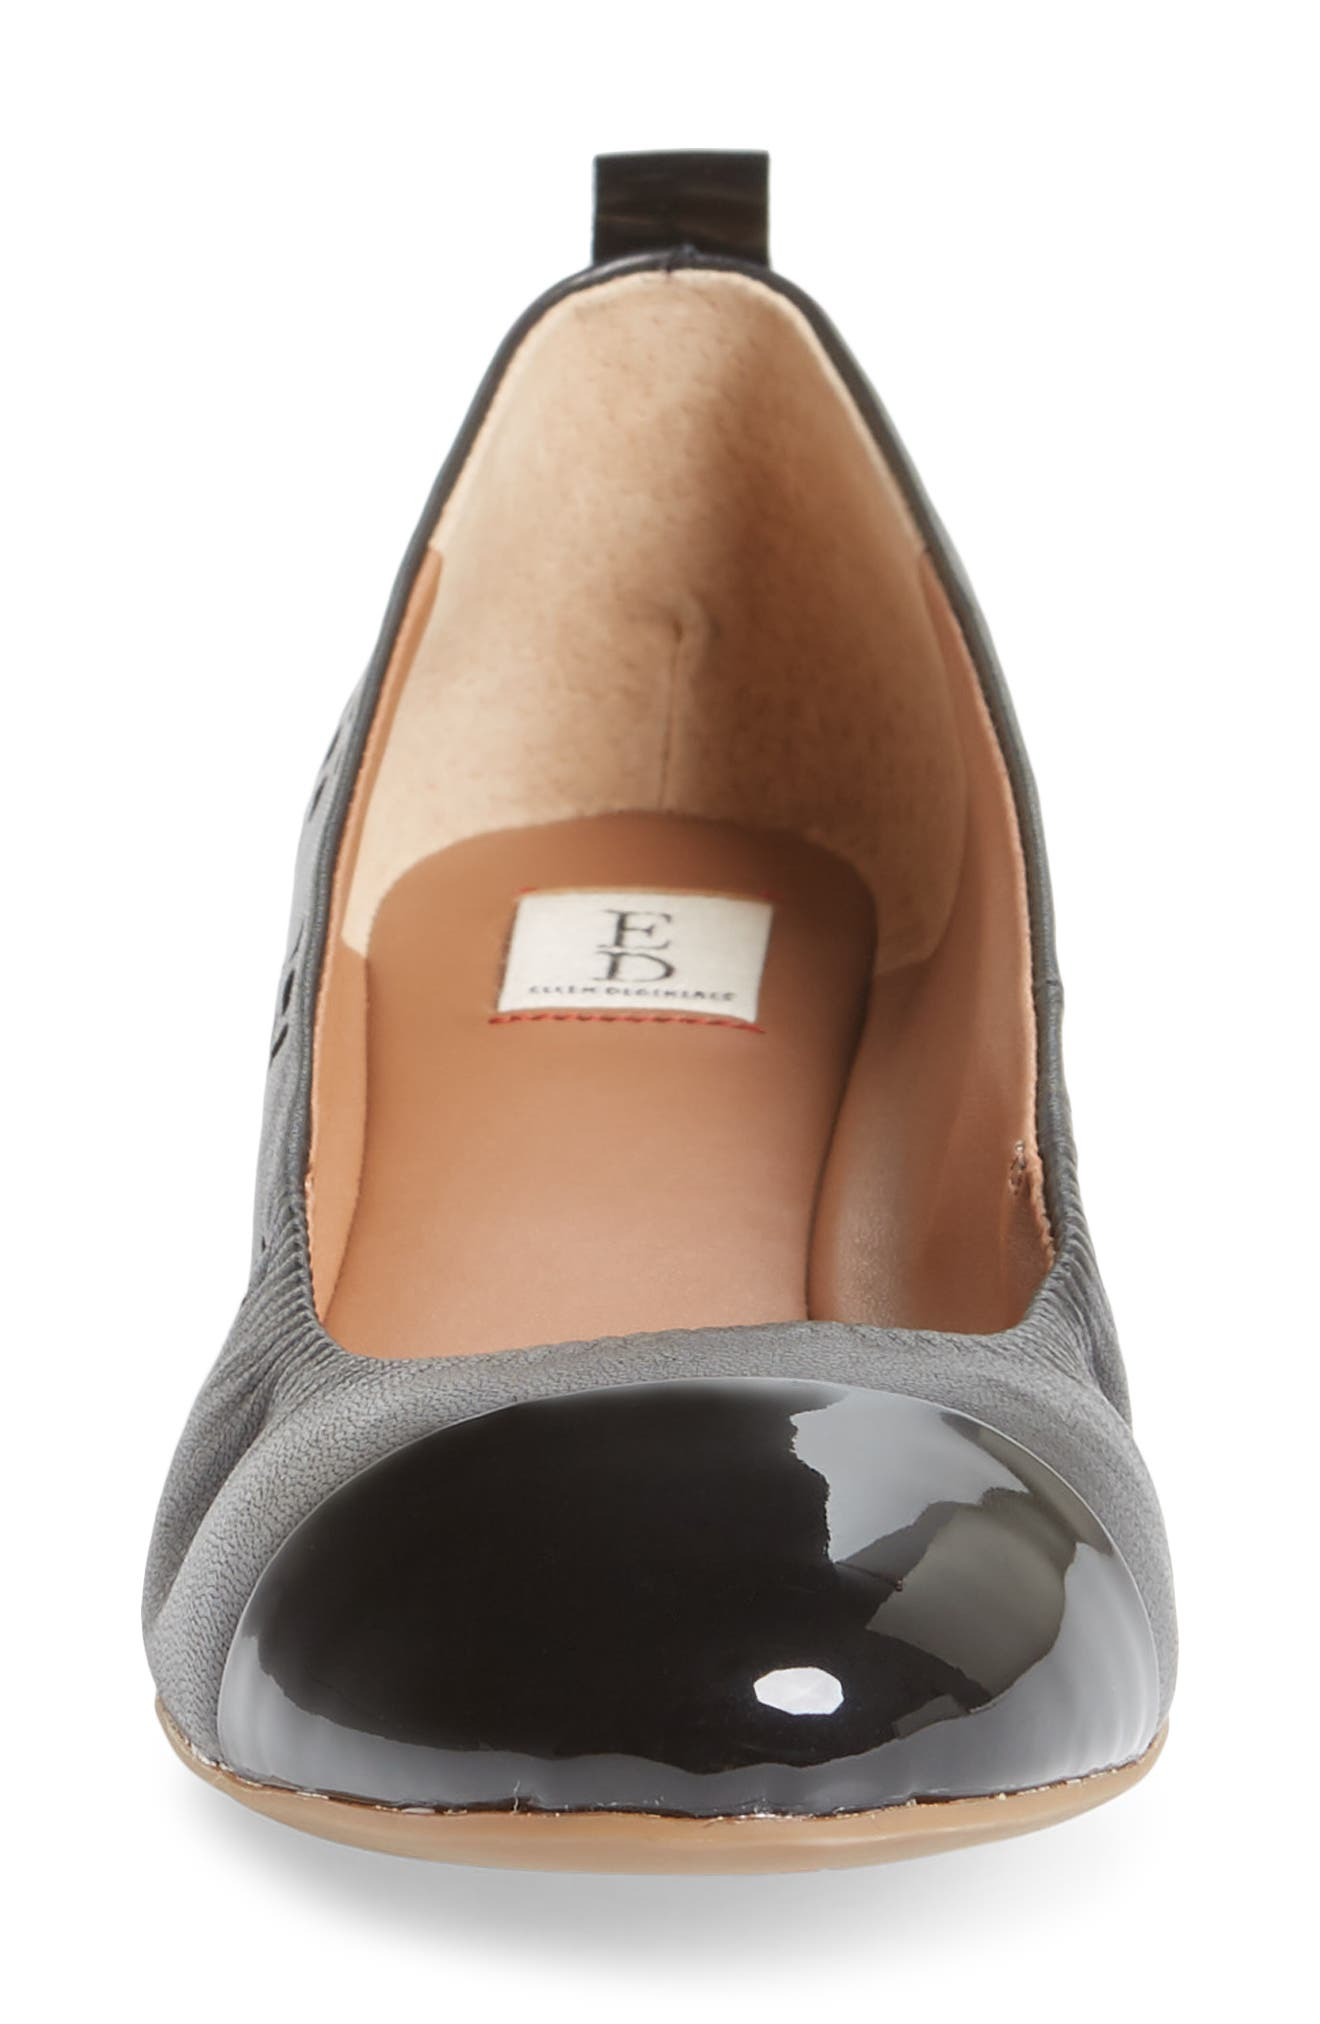 Larra Cap Toe Ballet Flat,                             Alternate thumbnail 4, color,                             001